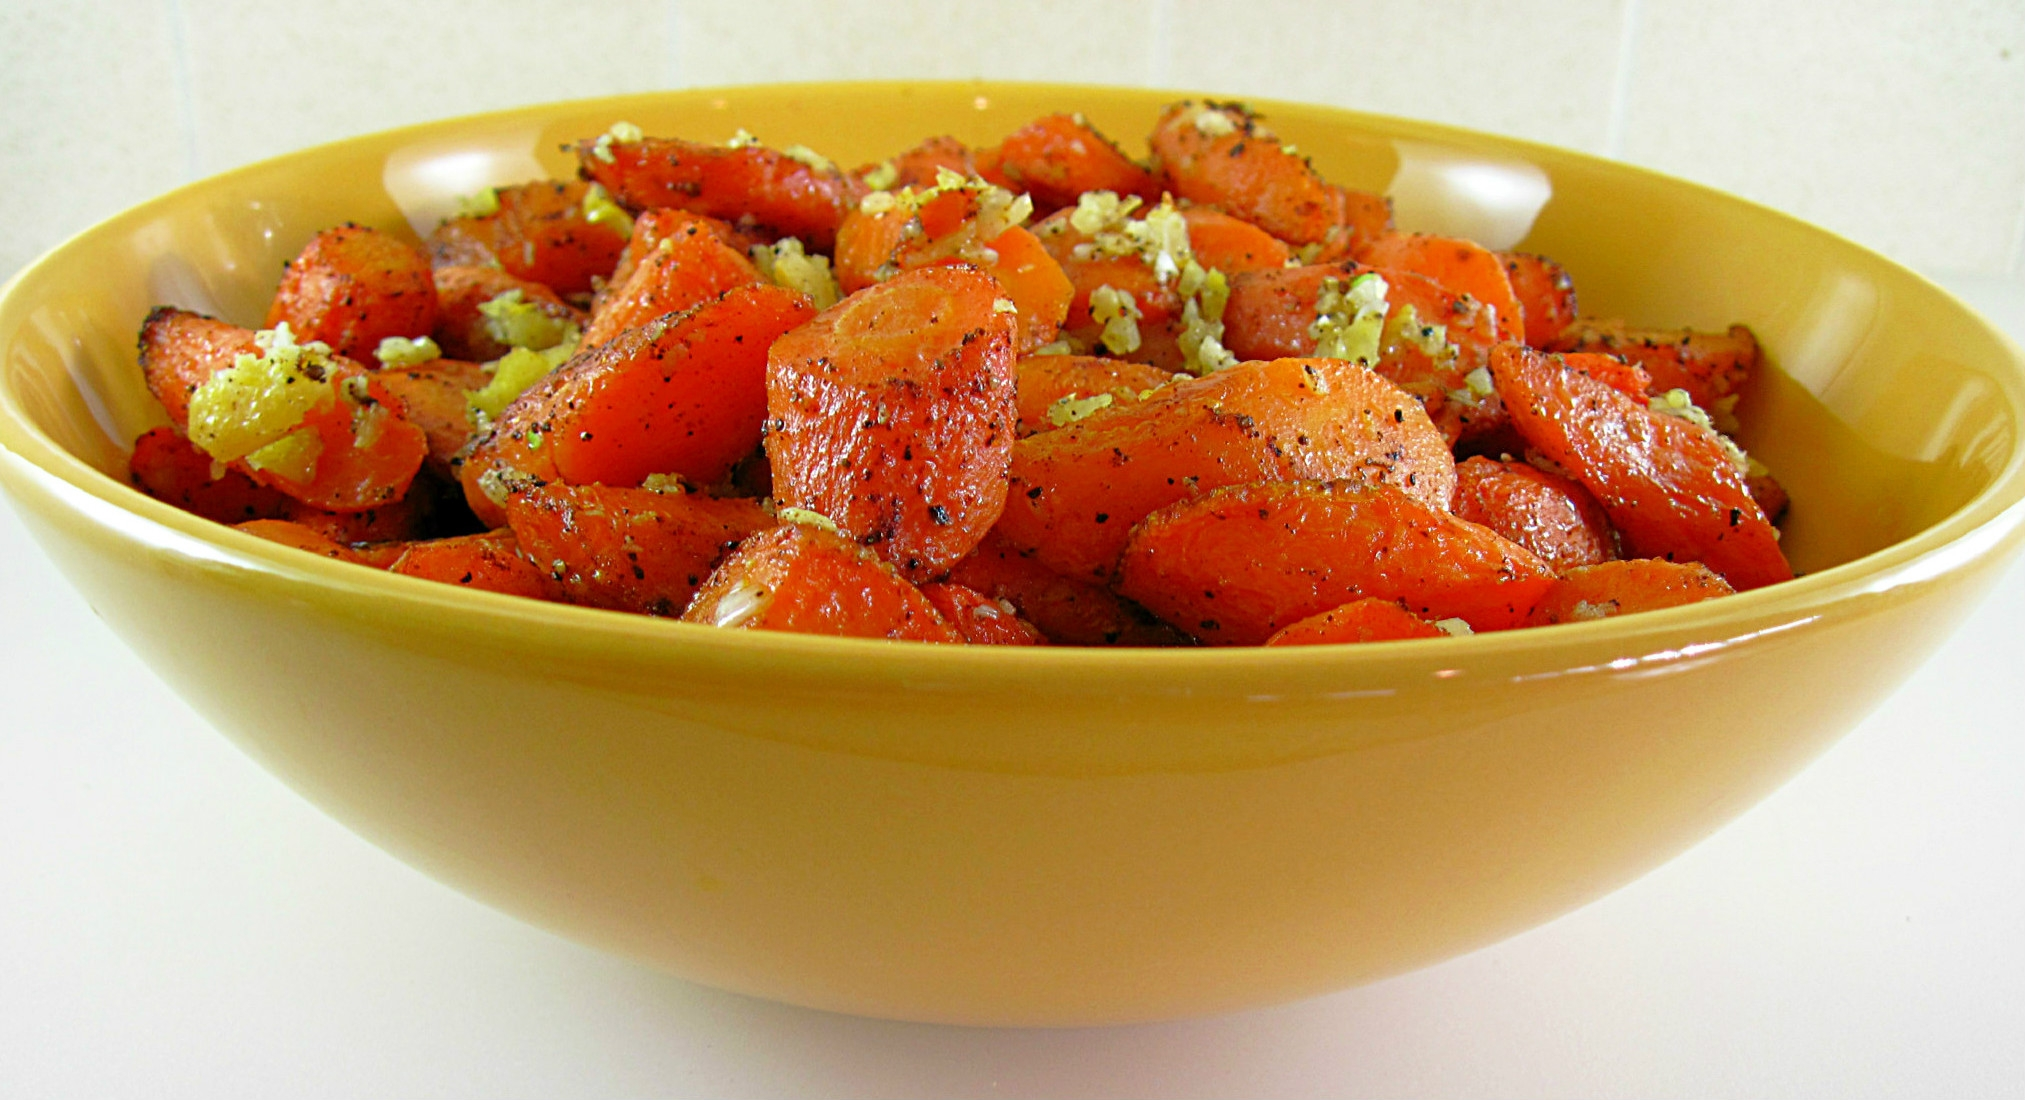 ... roasted carrots spring onions with chaat masala roasted carrots with